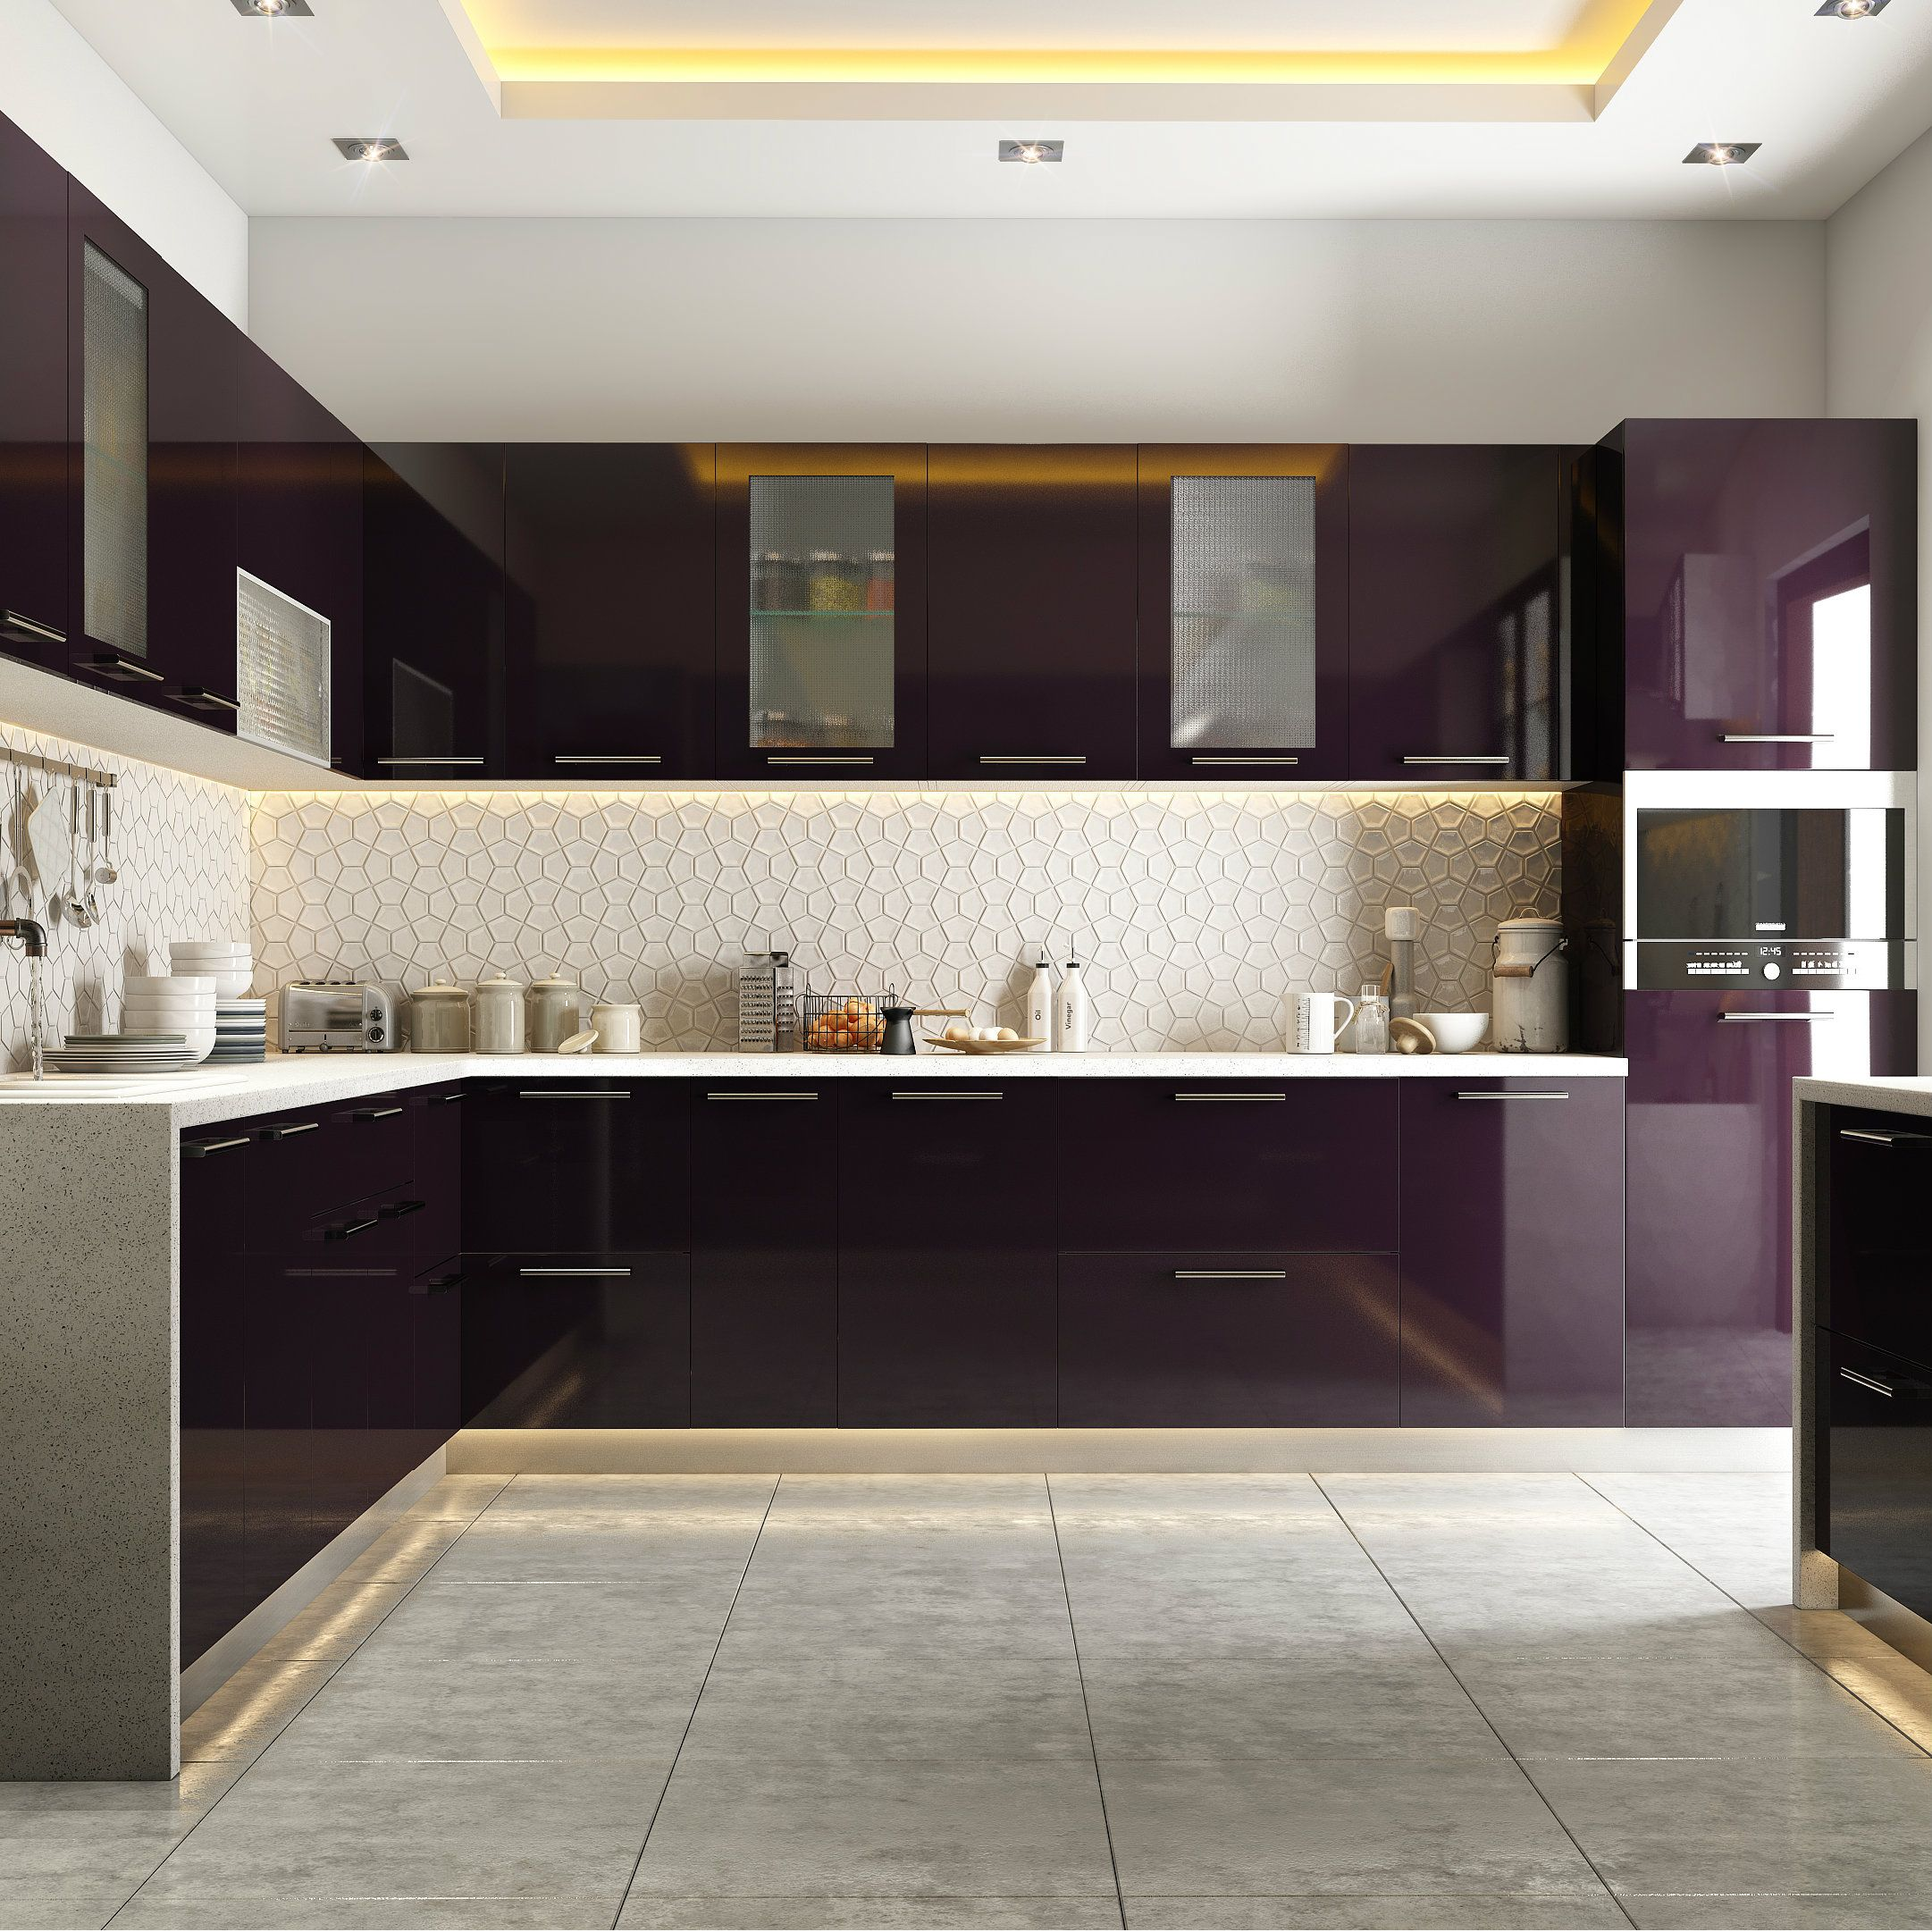 modular kitchen styled in burgundy hues kitchen modular kitchen furniture design kitchen design on u kitchen interior id=88984